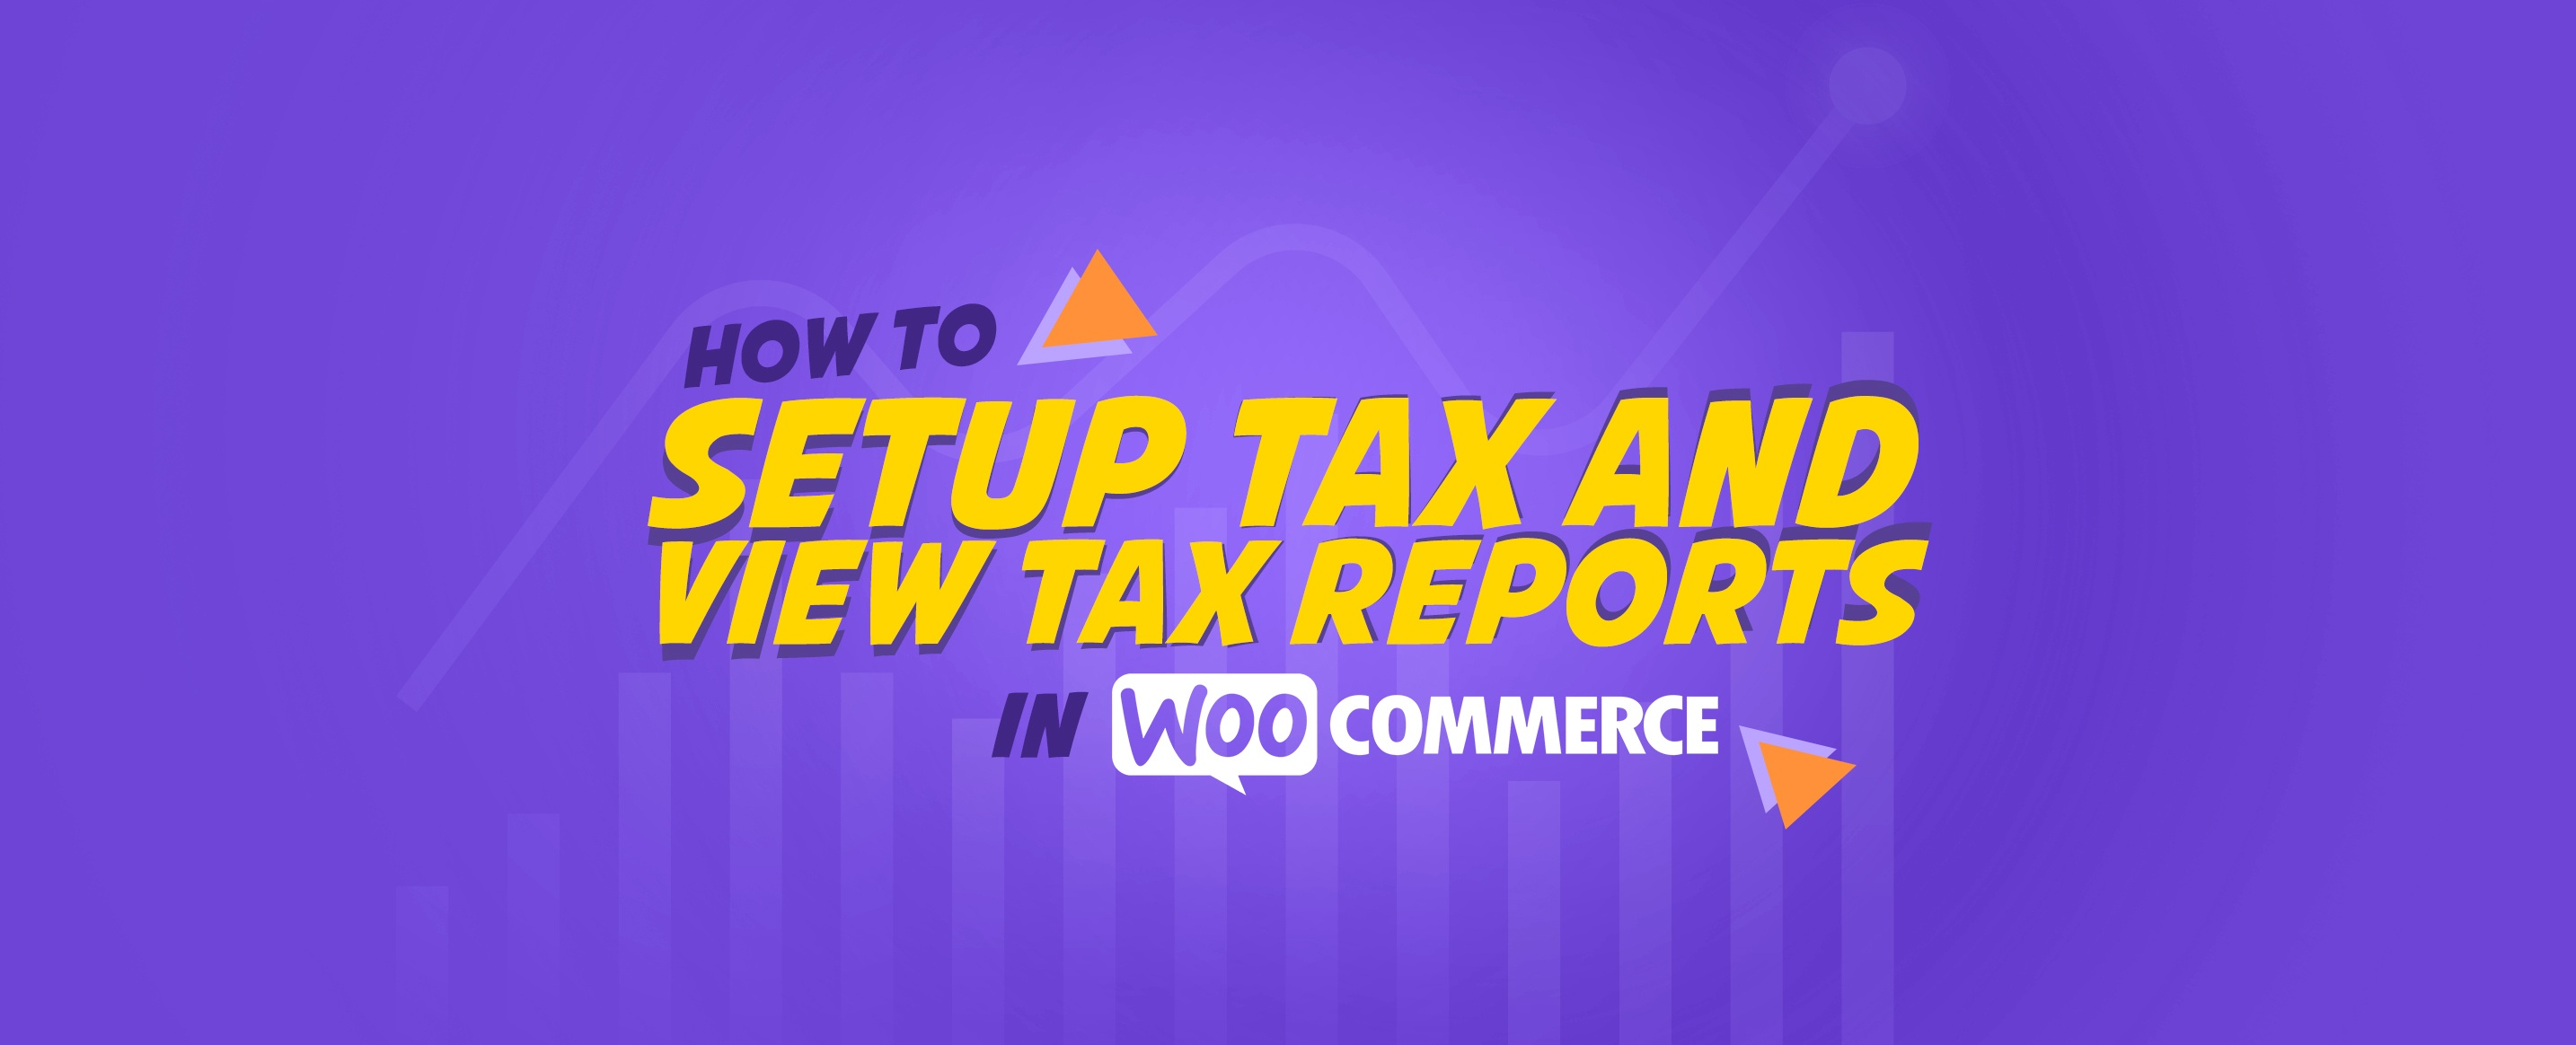 How-To-Setup-Tax-and-View-Tax-Reports-in-WooCommerce